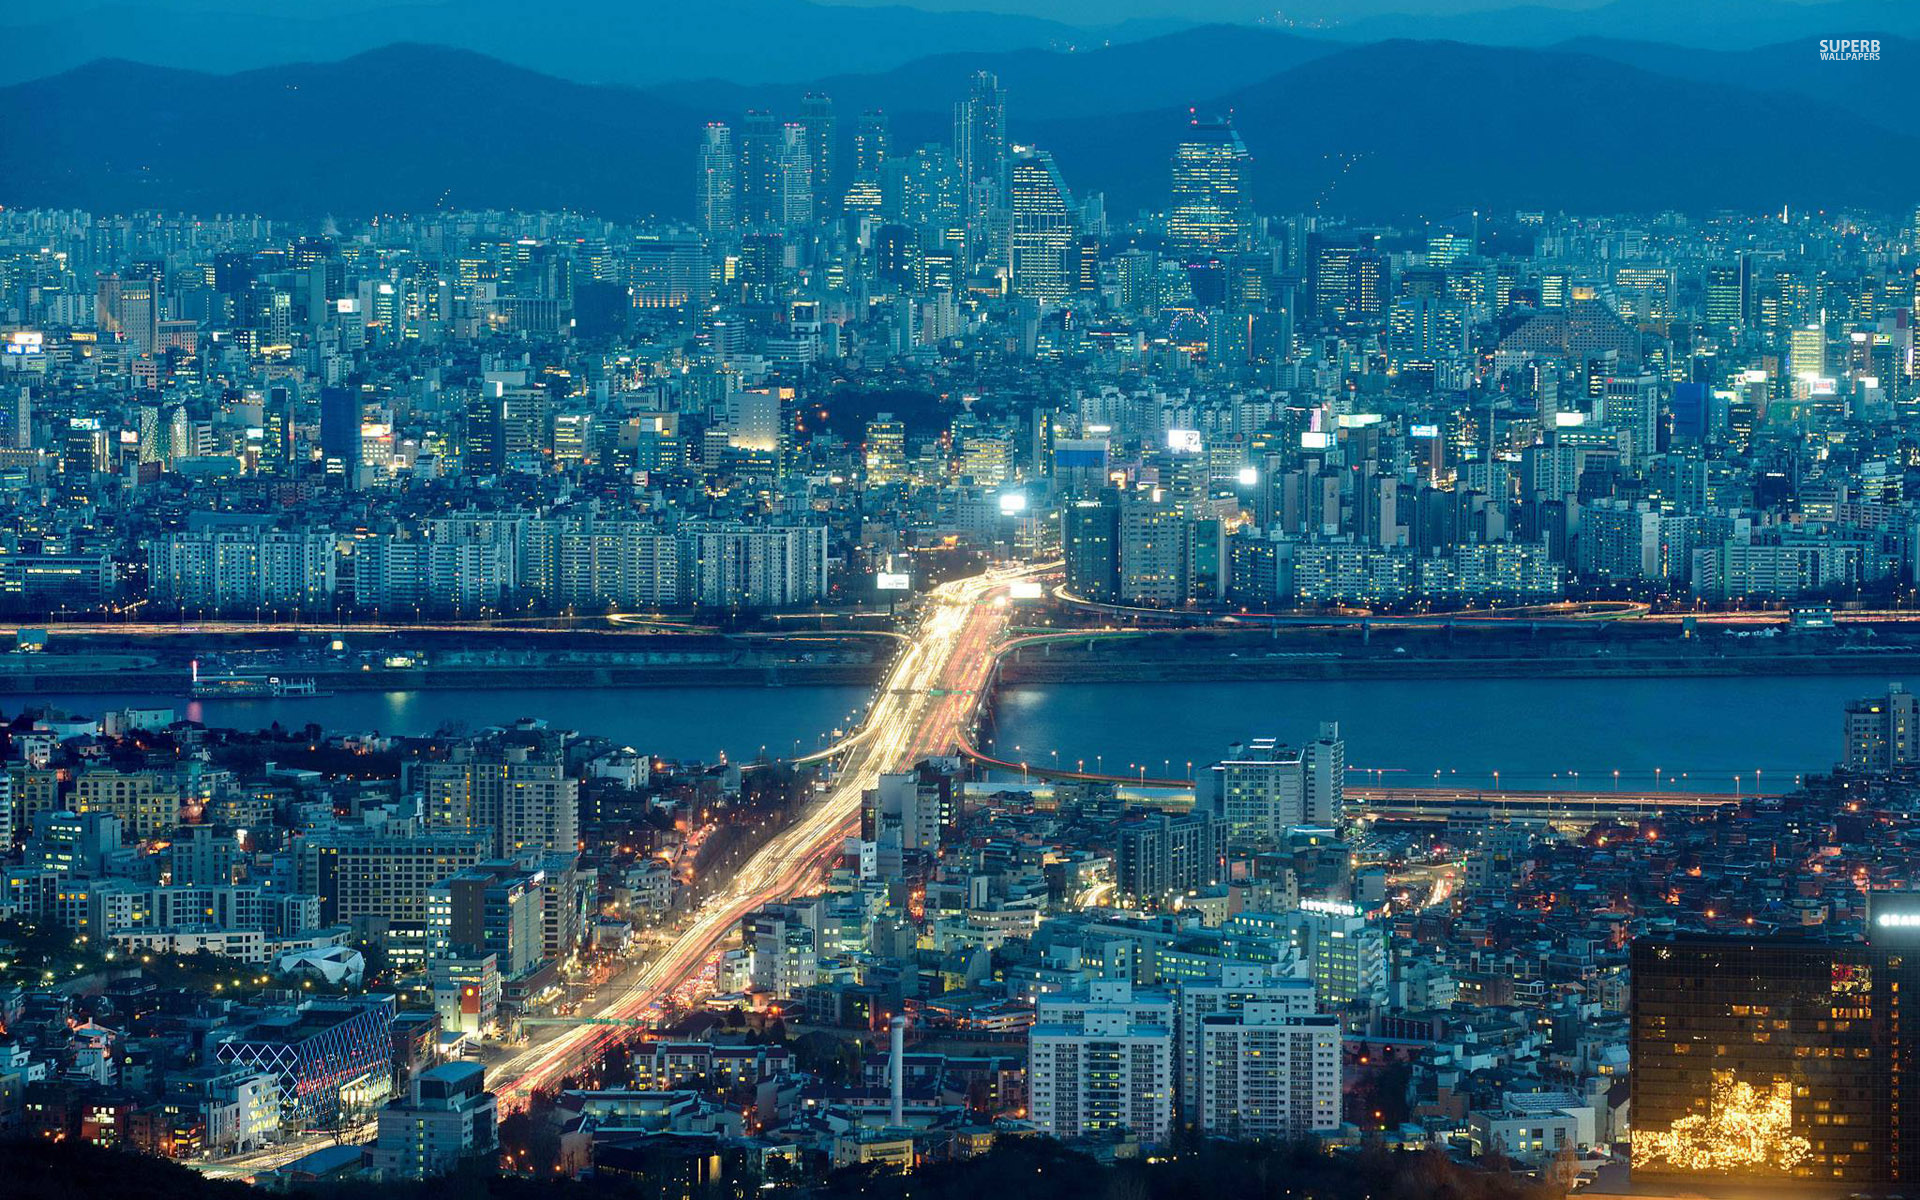 Korea Wallpaper: Seoul Wallpapers, Pictures, Images